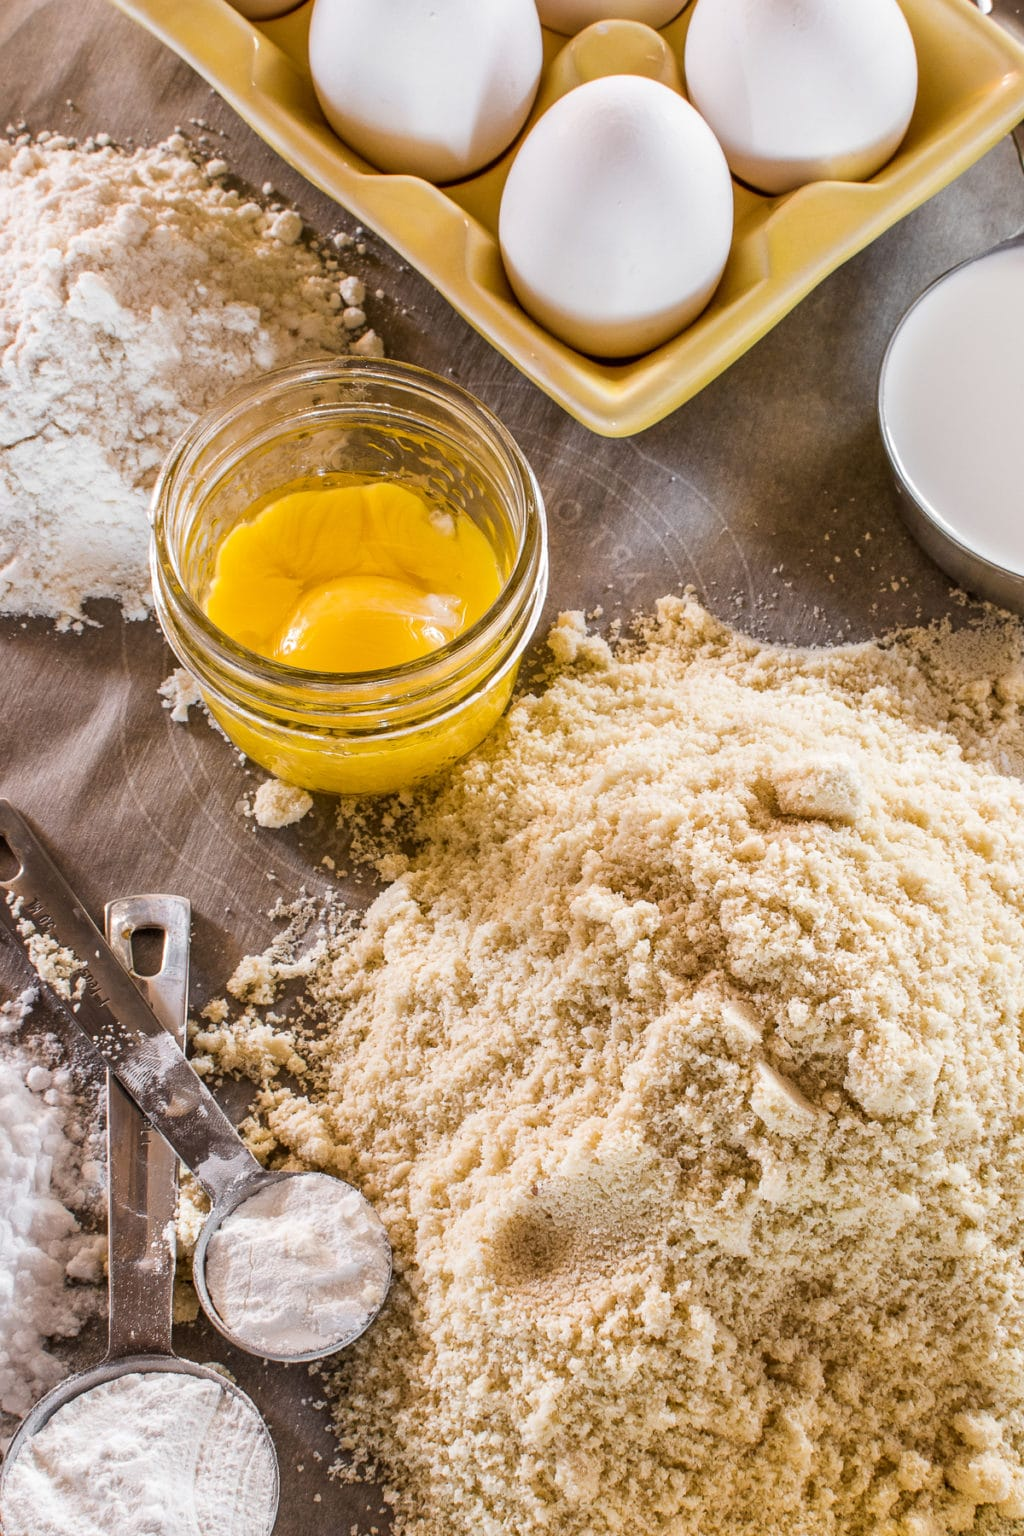 A table of baking ingredients with flours, eggs, and measuring spoons